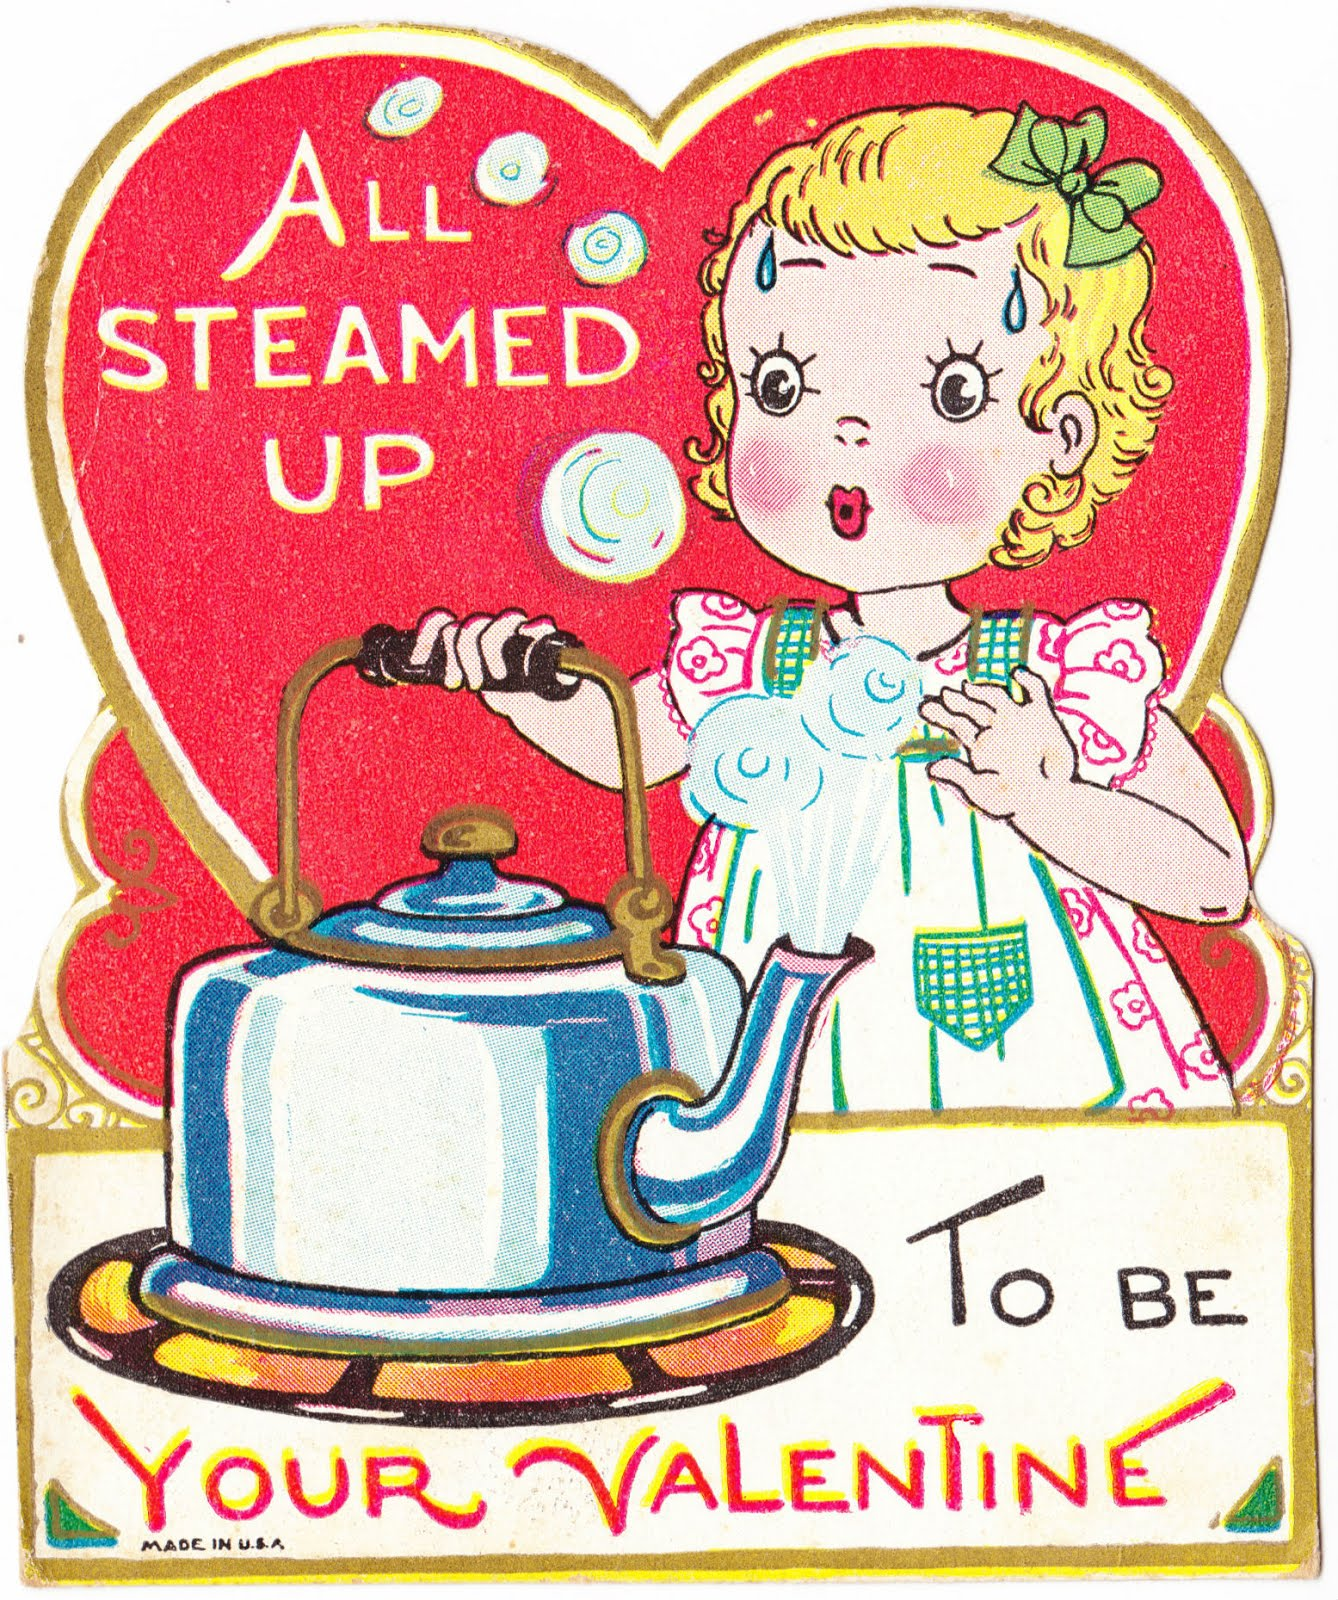 'All Steamed Up' Valentine - date unknown